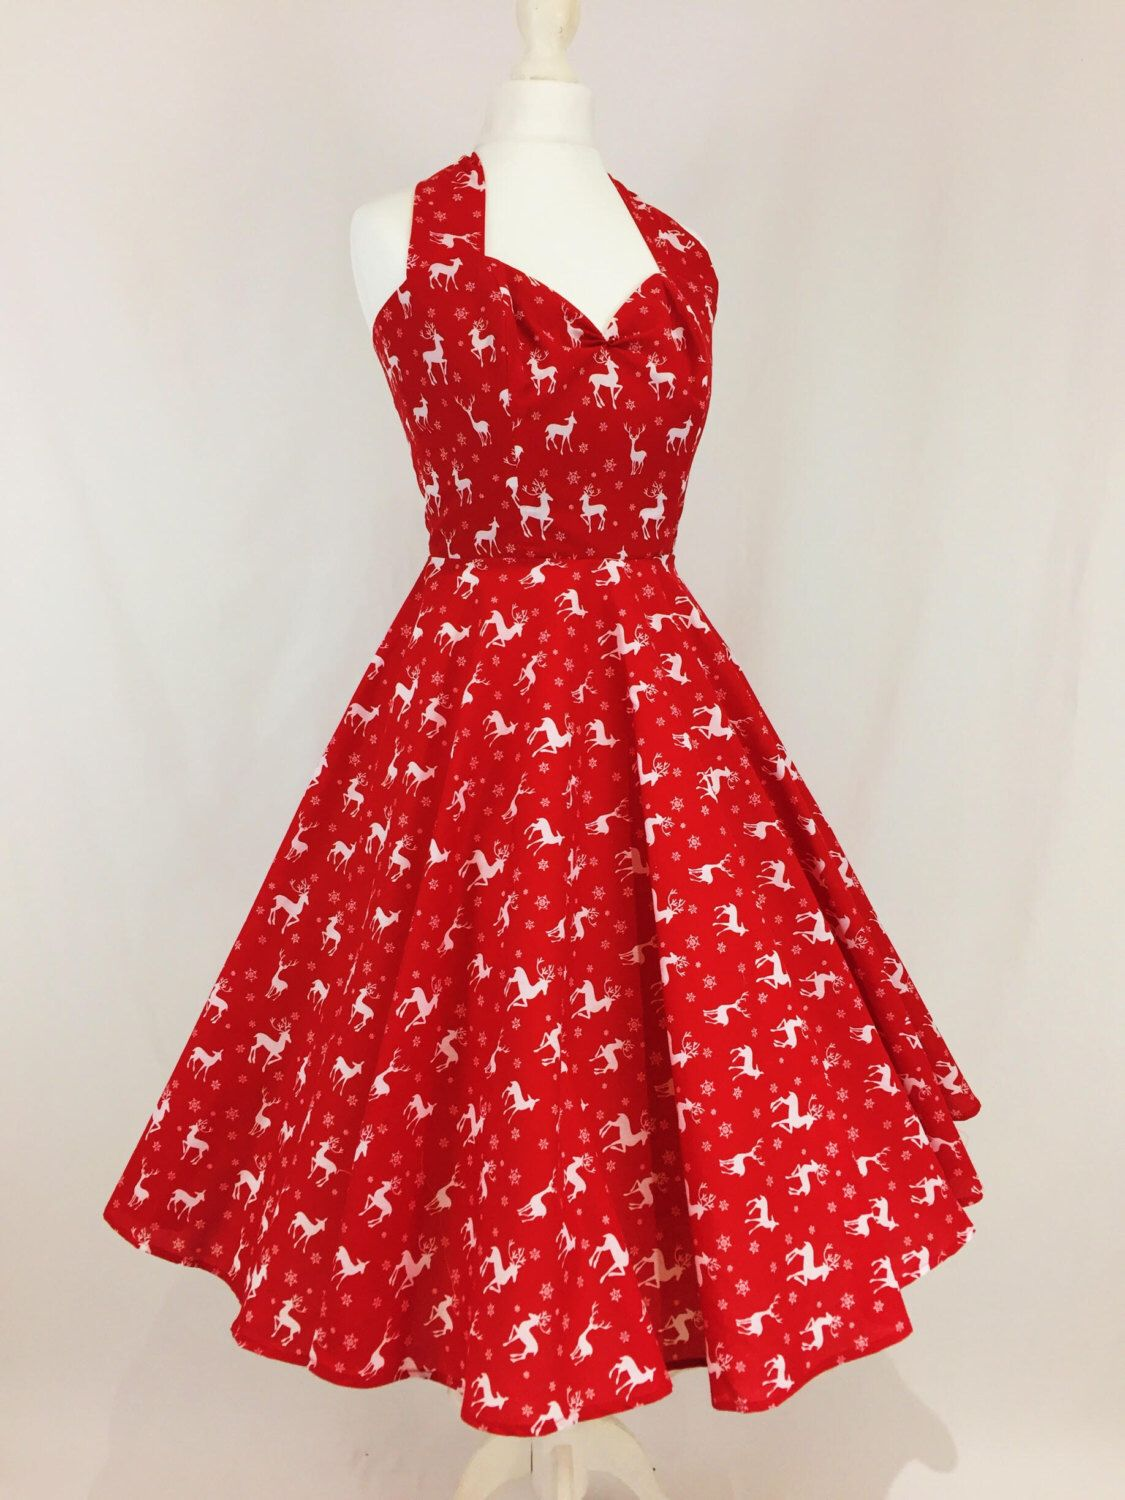 e110bb56643d9 Reindeer and Snowflake Red and White Christmas Dress. Full circle skrit,  halterneck, festive